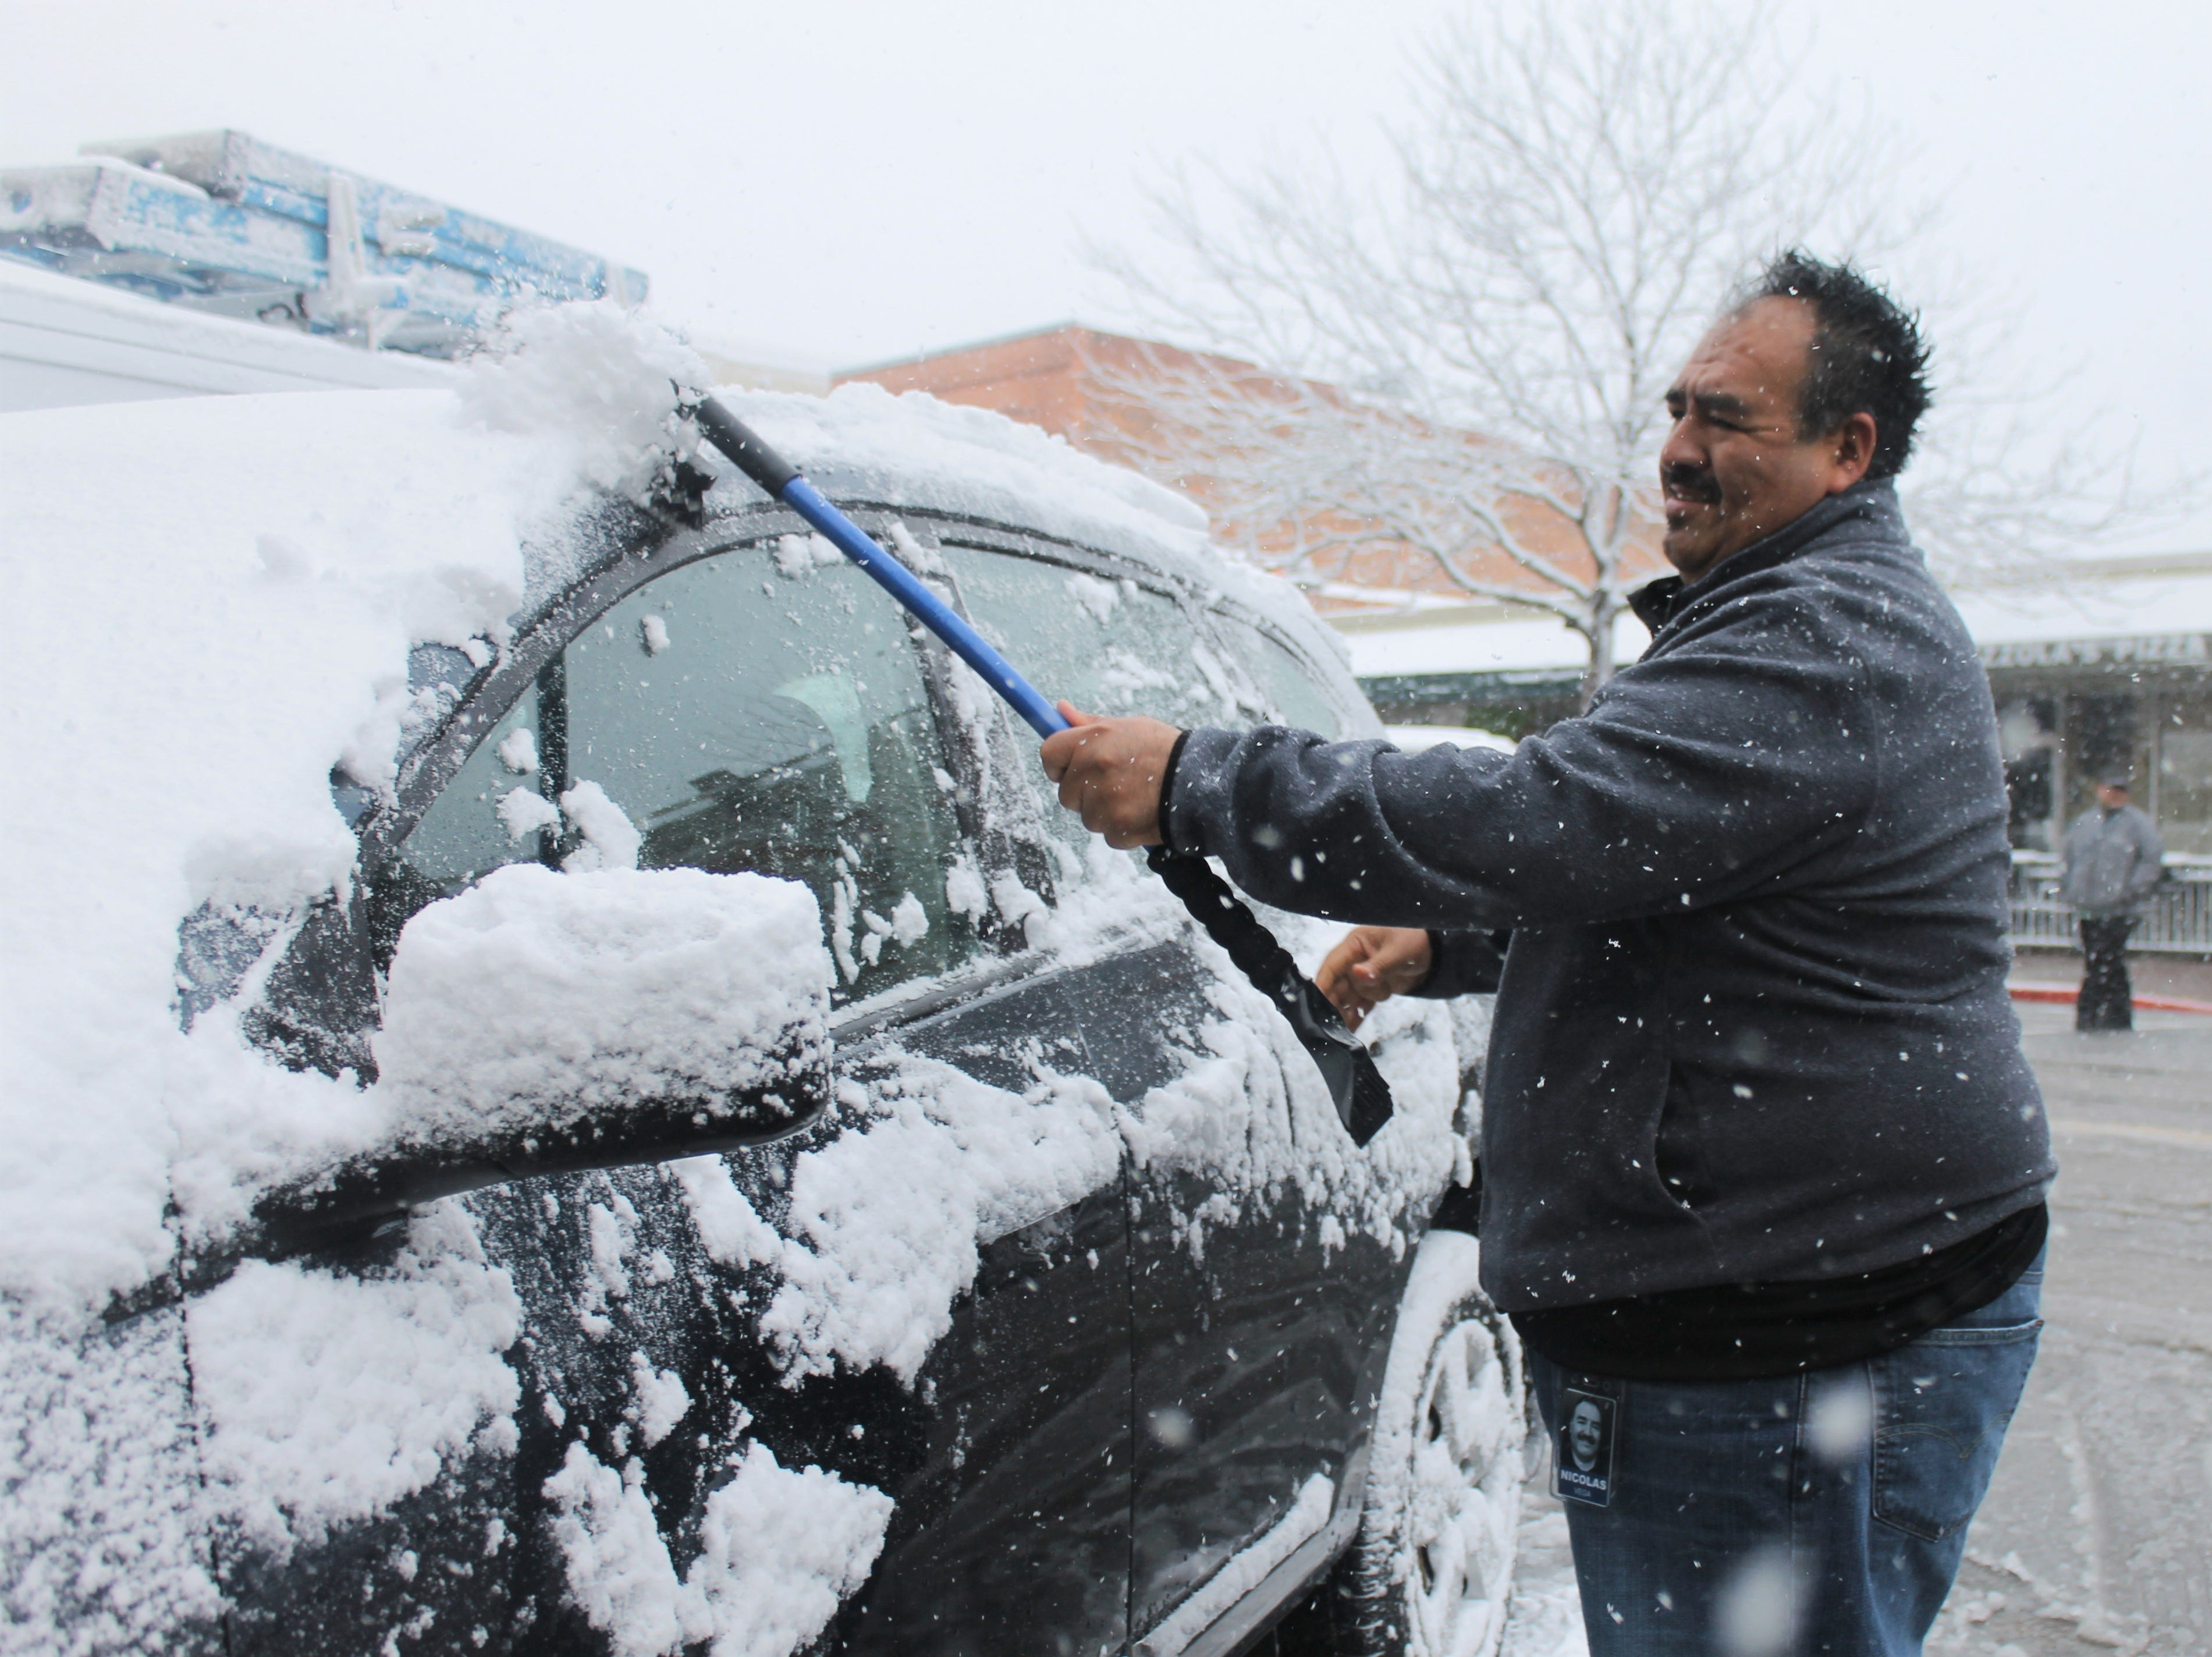 Alex Varga clears snow off his car in Old Town Wednesday as a blizzard rolls in.